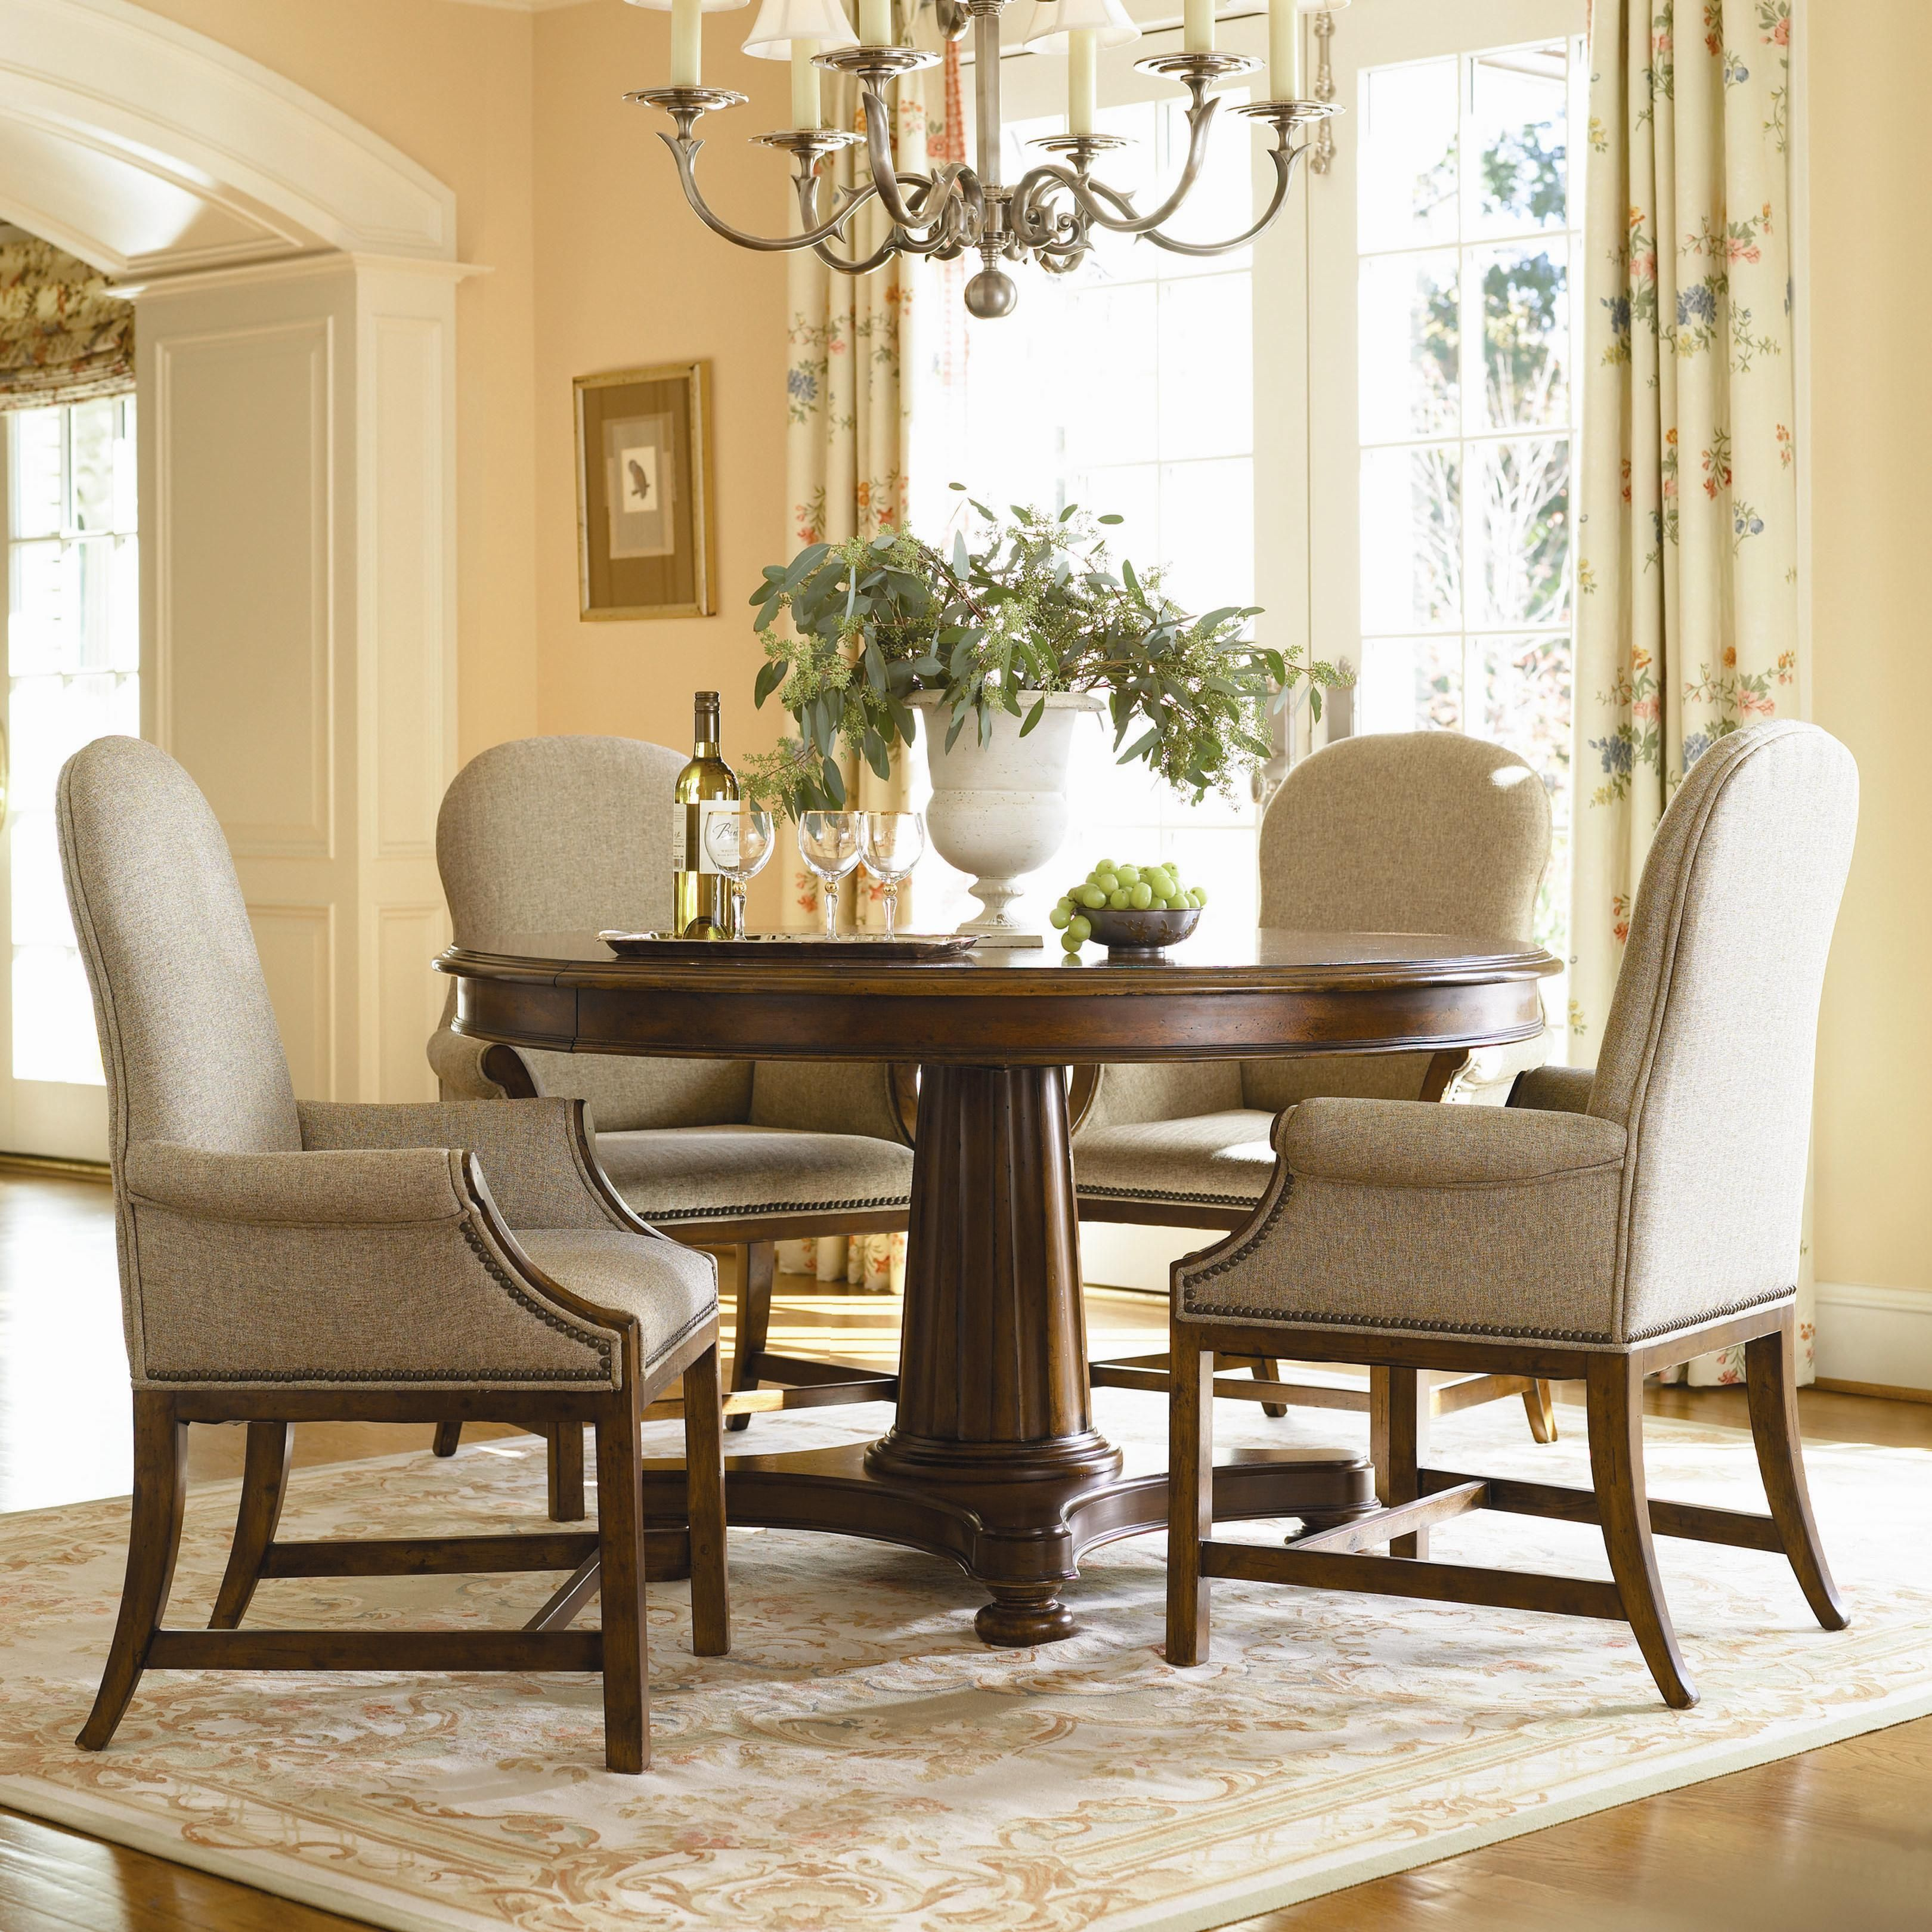 upholstered dining room arm chairs | Governor's Place Adjustable Height Round Dining Table With ...